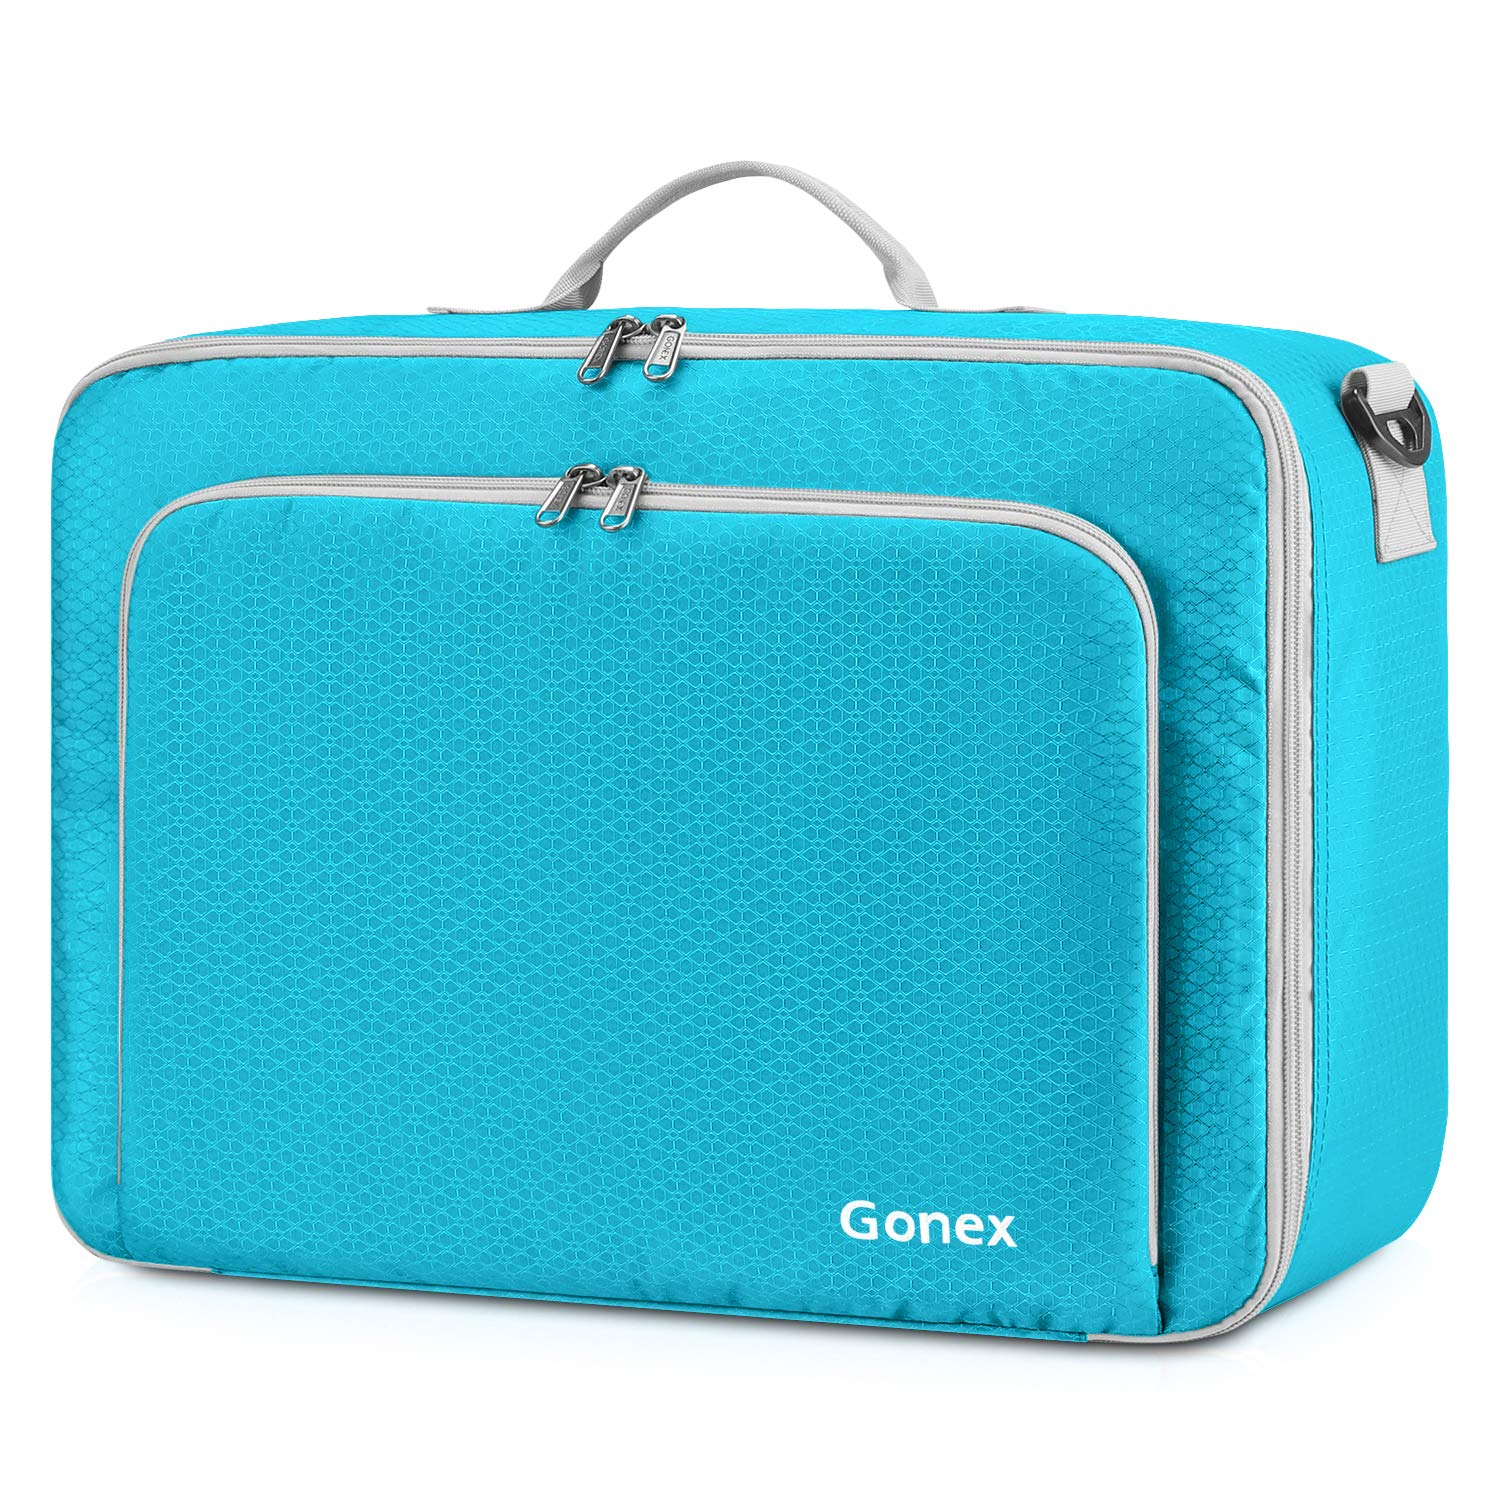 Gonex Travel Duffel Bag, Portable Carry on Luggage Personal Item Bag for Airlines, Water& Tear-Resistant 20L Blue